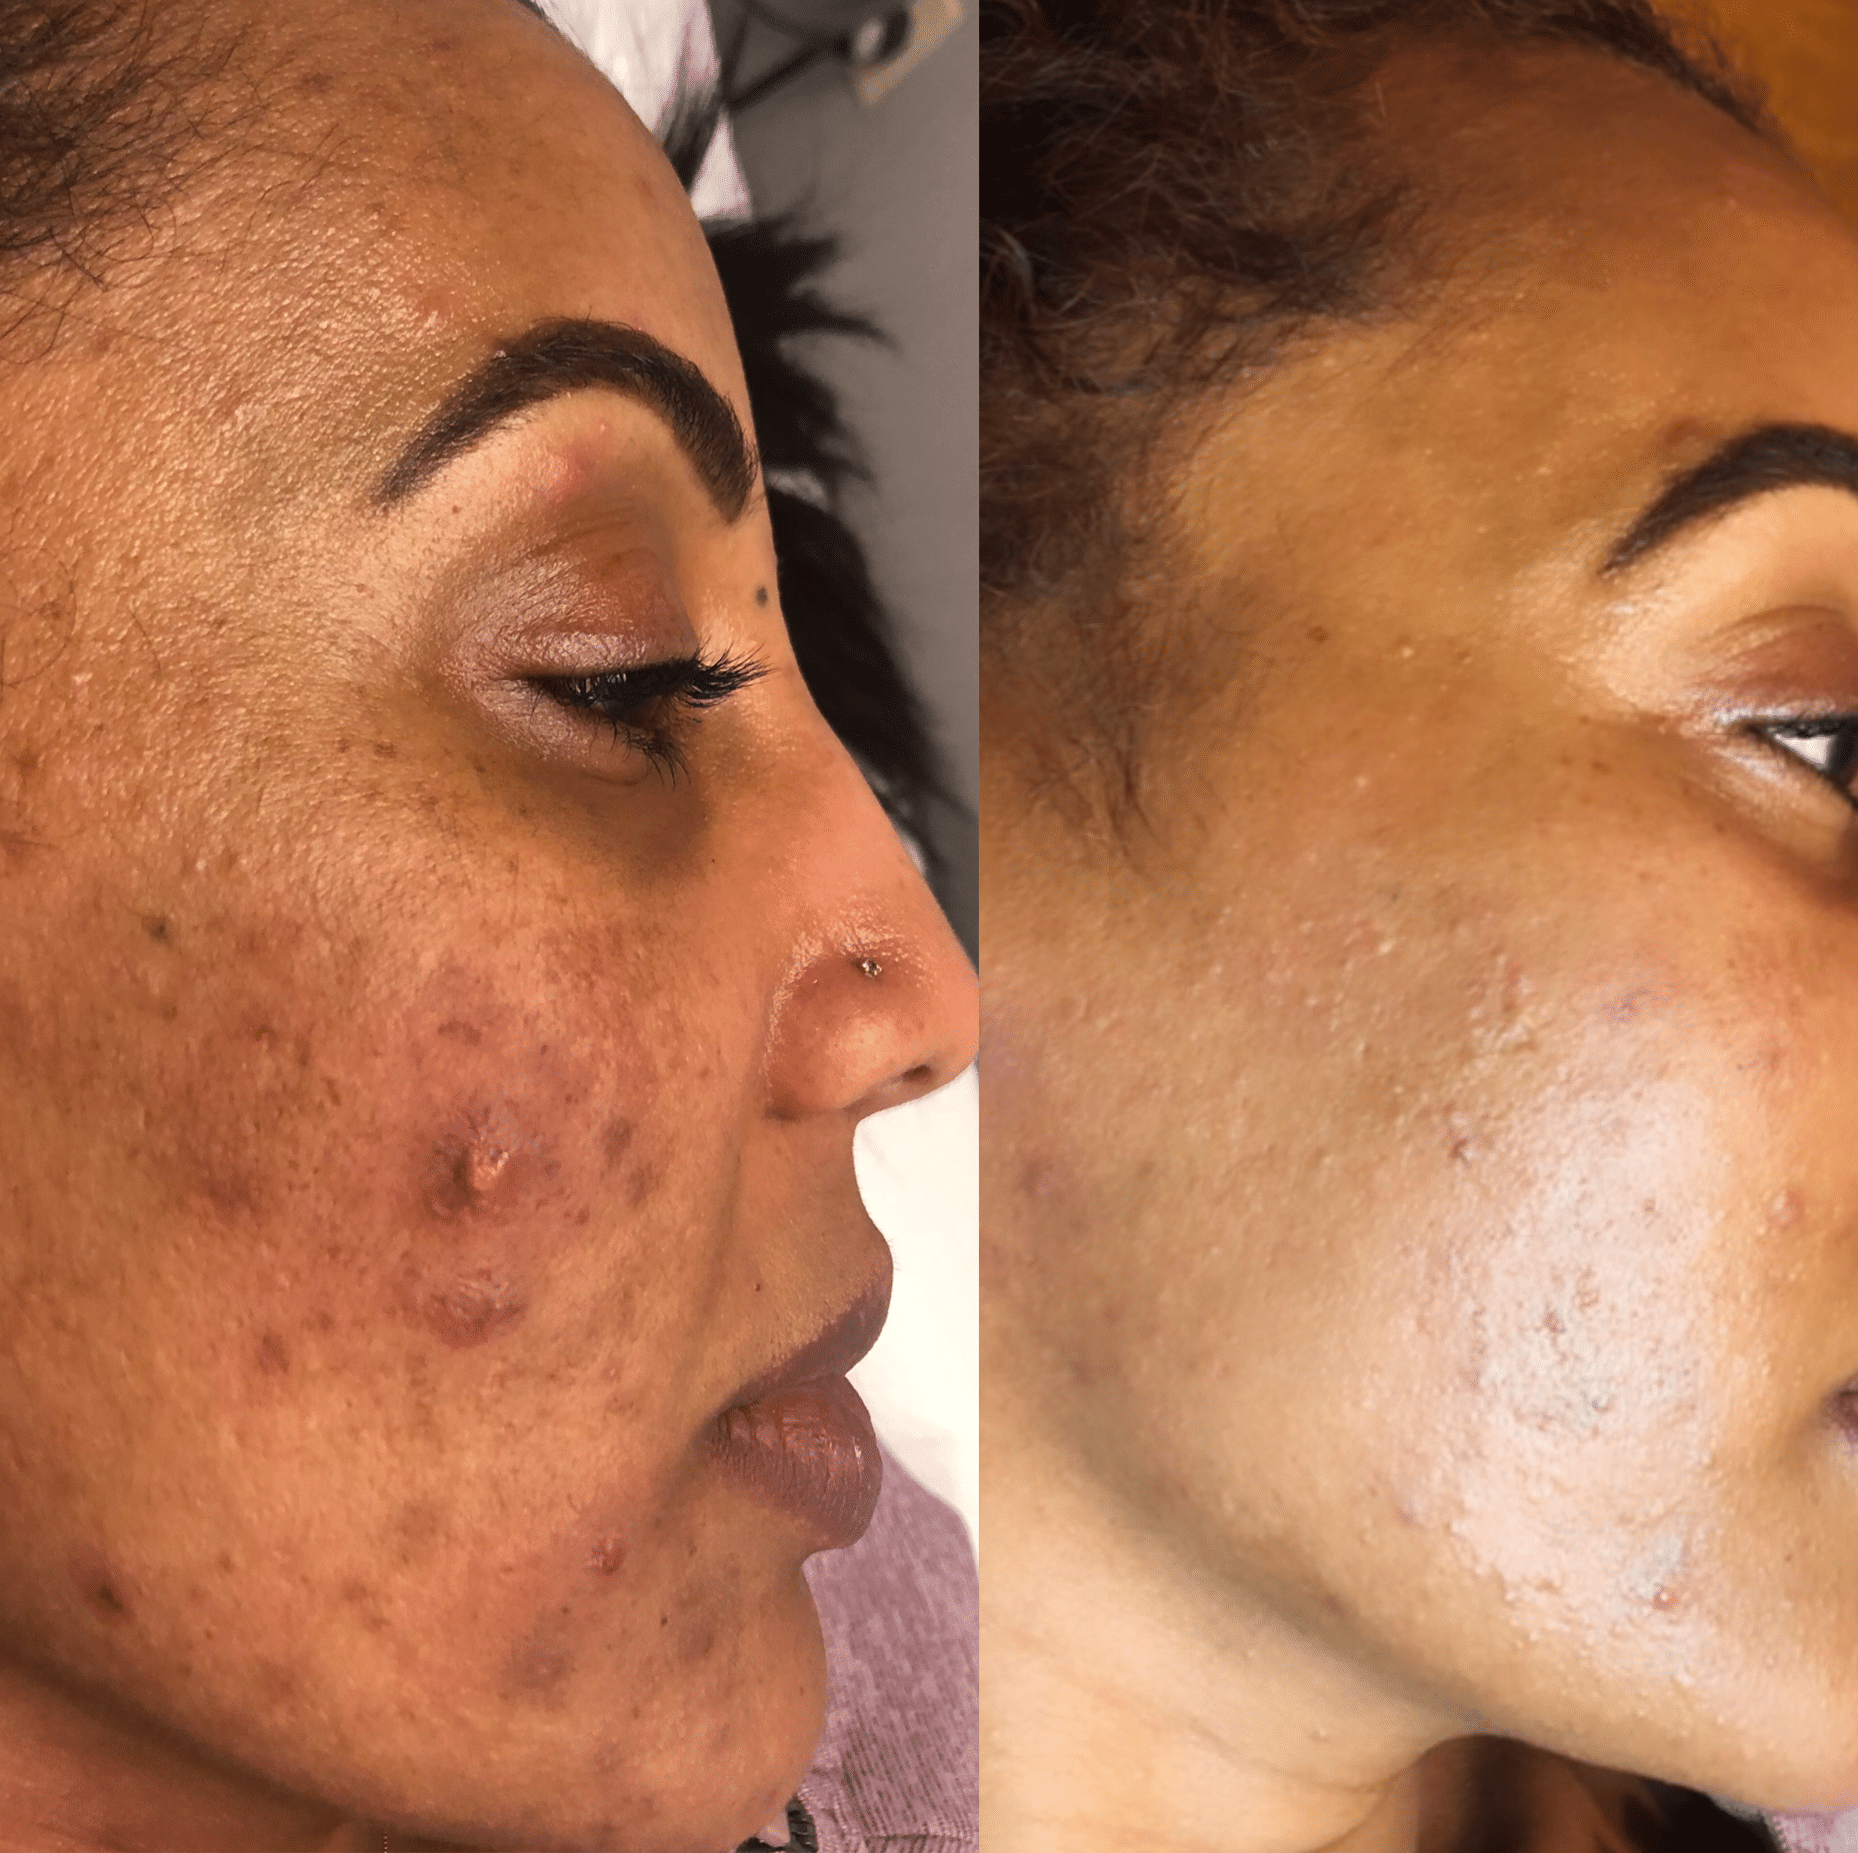 Skin Transformation by Savannah @GerrishMedEsthetics Look at this incredible before and after shot. 🙌🏻This is after three Perfect Peels and using a medical-grade skincare line at home. This type of peel is a medium-depth chemical peel that can be performed as a stand alone treatment or in addition to other cosmetic procedures. It's considered safe for all skin types and skin tones. Not only does it improve the general look and feel of your skin, it also reduces lines under the eyes and around the mouth, treats wrinkles caused by sun damage and aging, improves the appearance of mild scars, reduces age spots, treats certain types of acne, and reduces age spots, freckles and dark patches related to pregnancy and birth control. It's amazing! Let me know if you have questions or need more info.